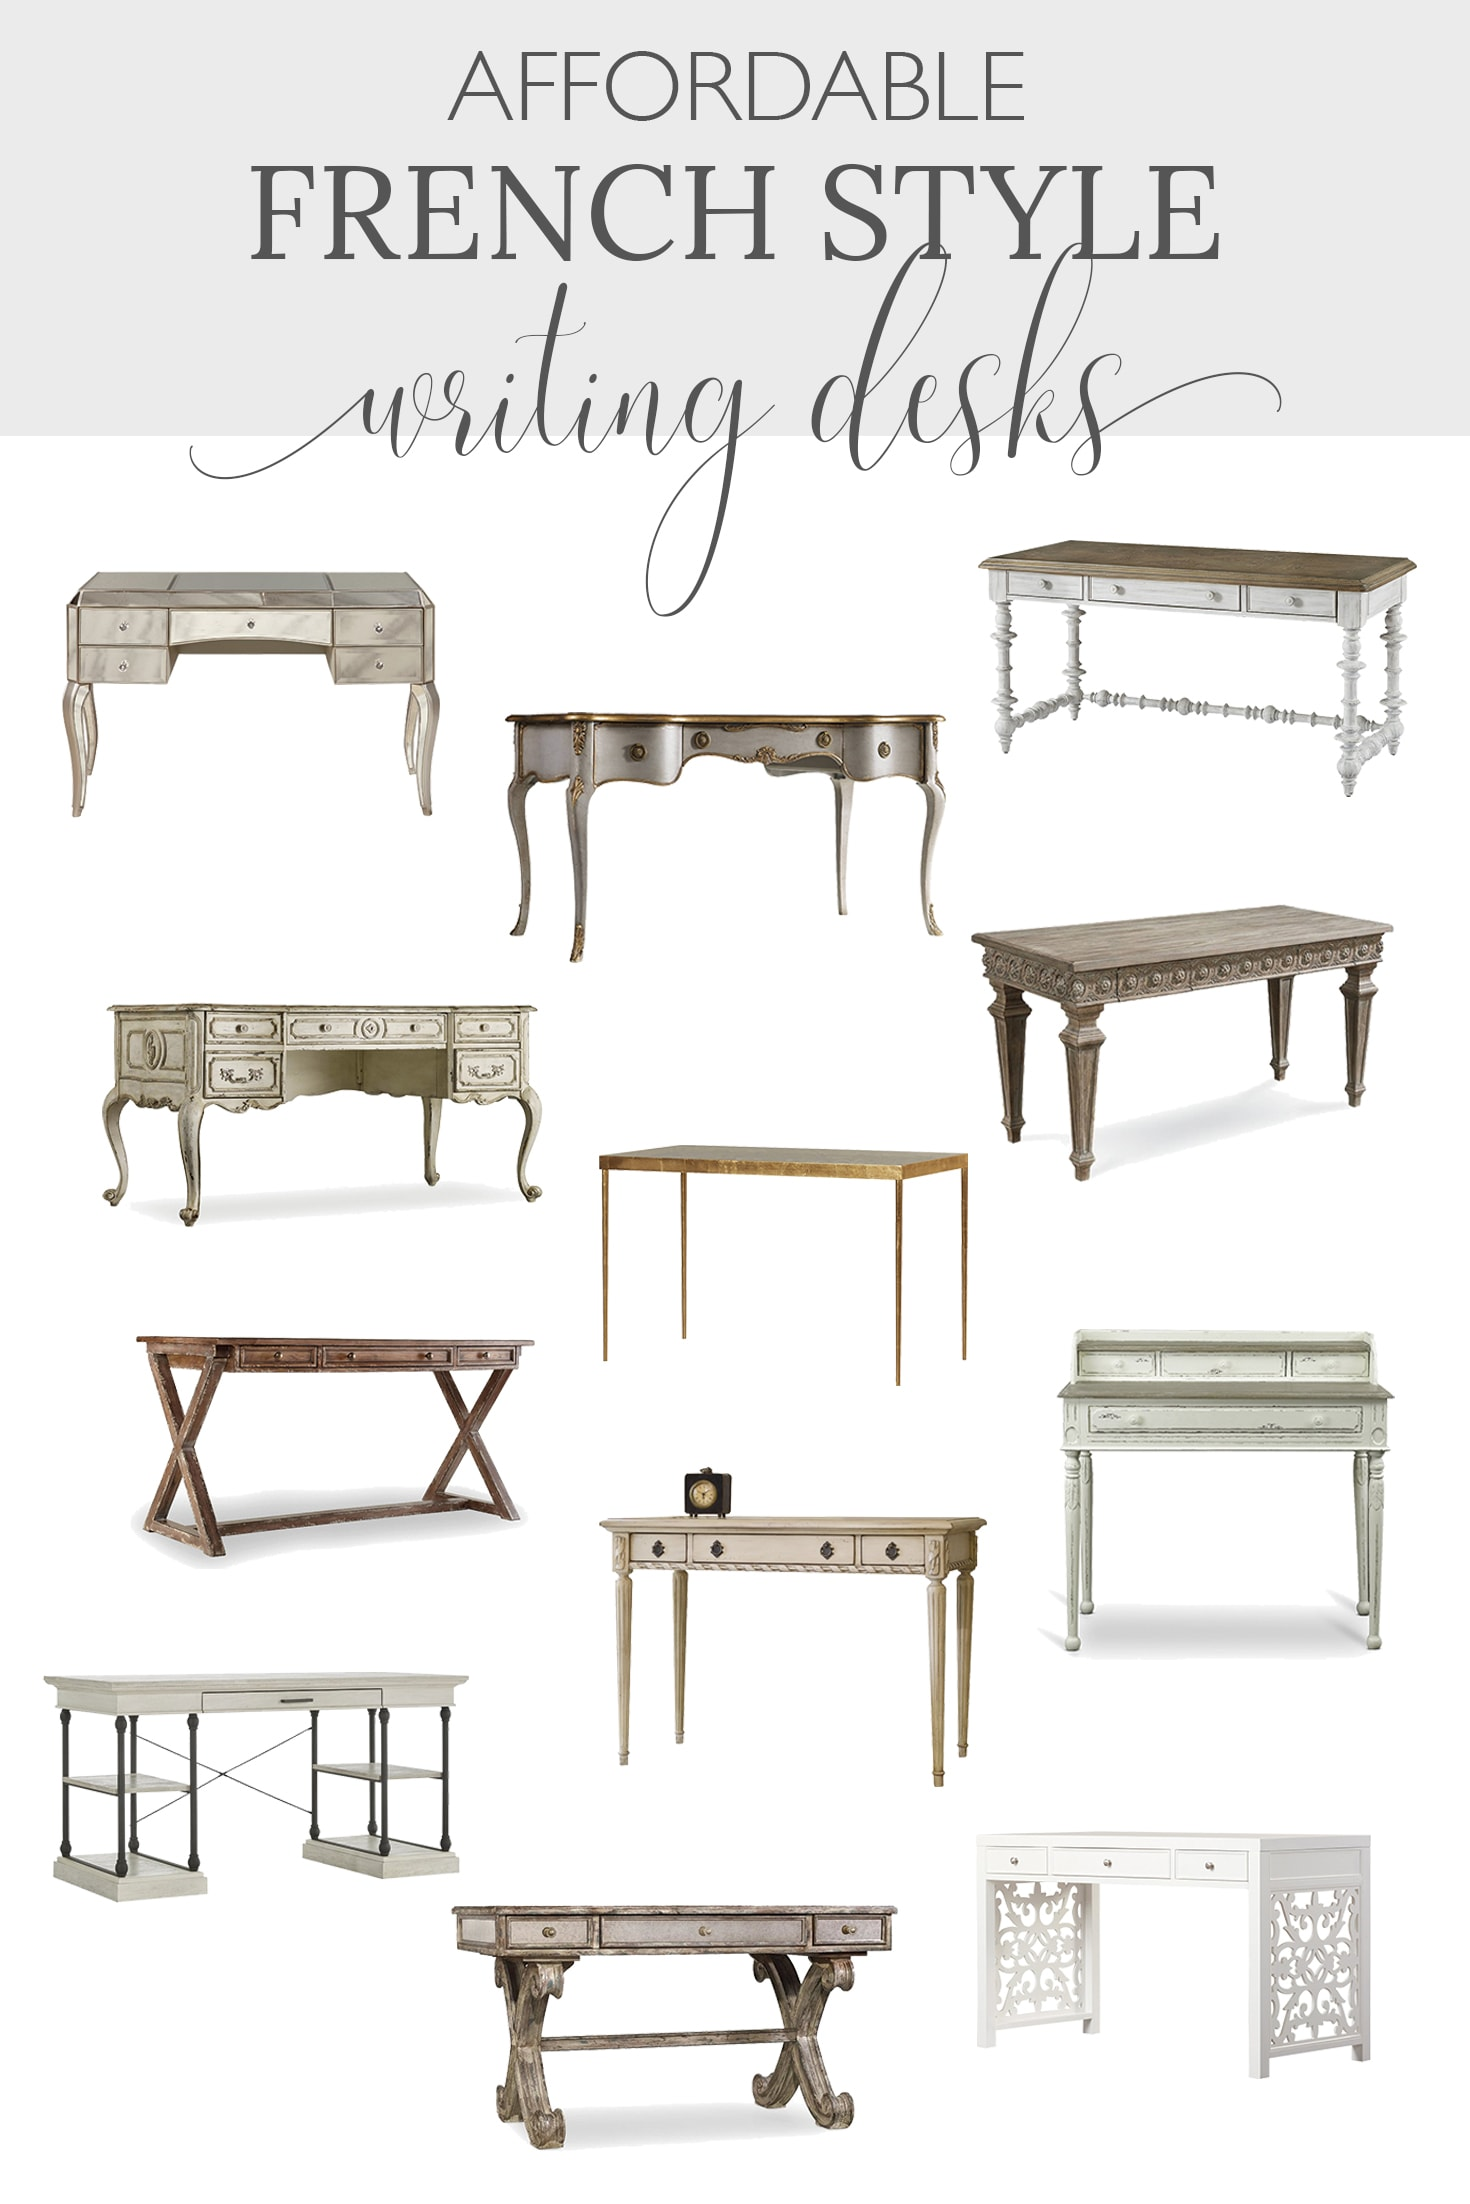 Affordable French Style Writing Desks